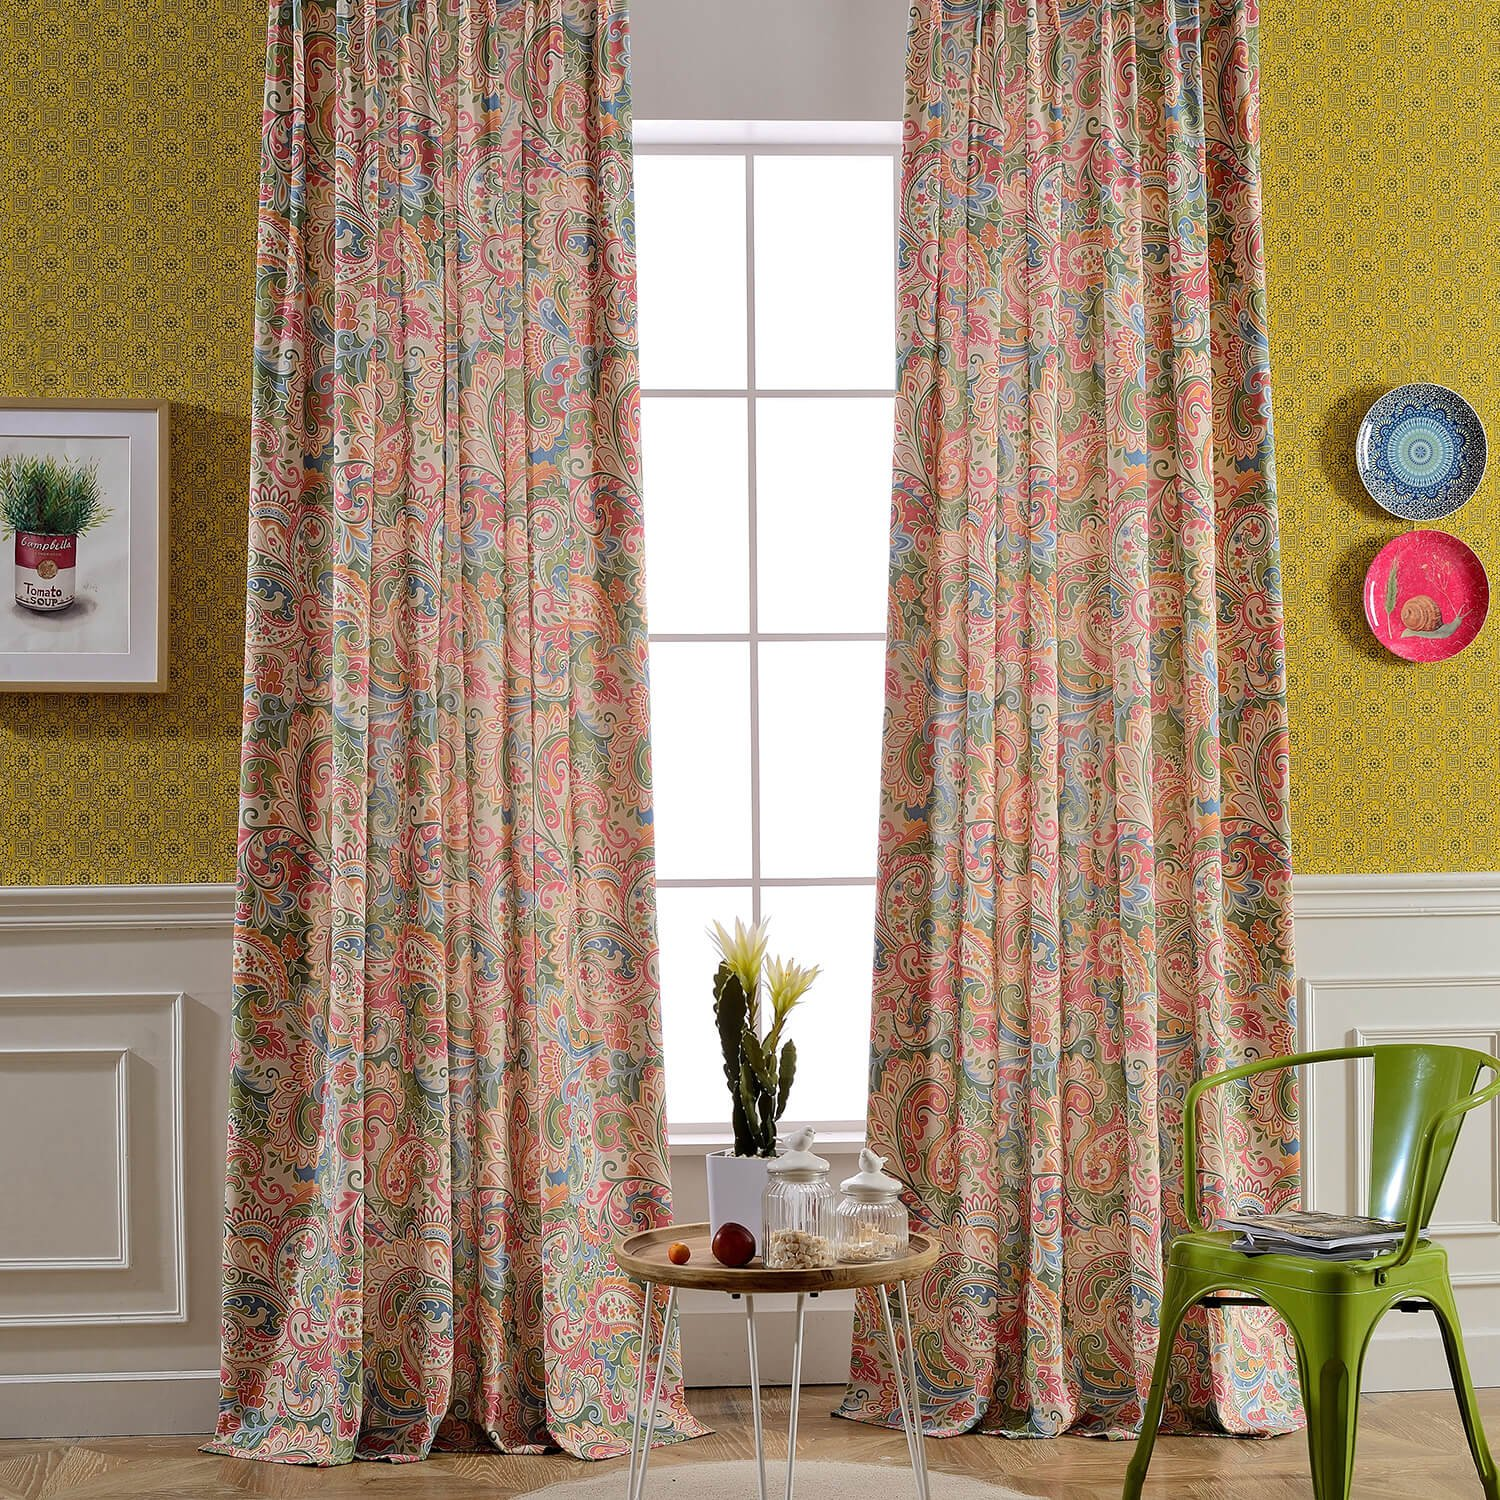 VOGOL Floral Printed Curtains, Thermal Insulated Noise Reduction Curtain Drapes Panels for Bedroom Hotel and Living Room, Set of 2 Panels, W52 x L84 inch, Orange